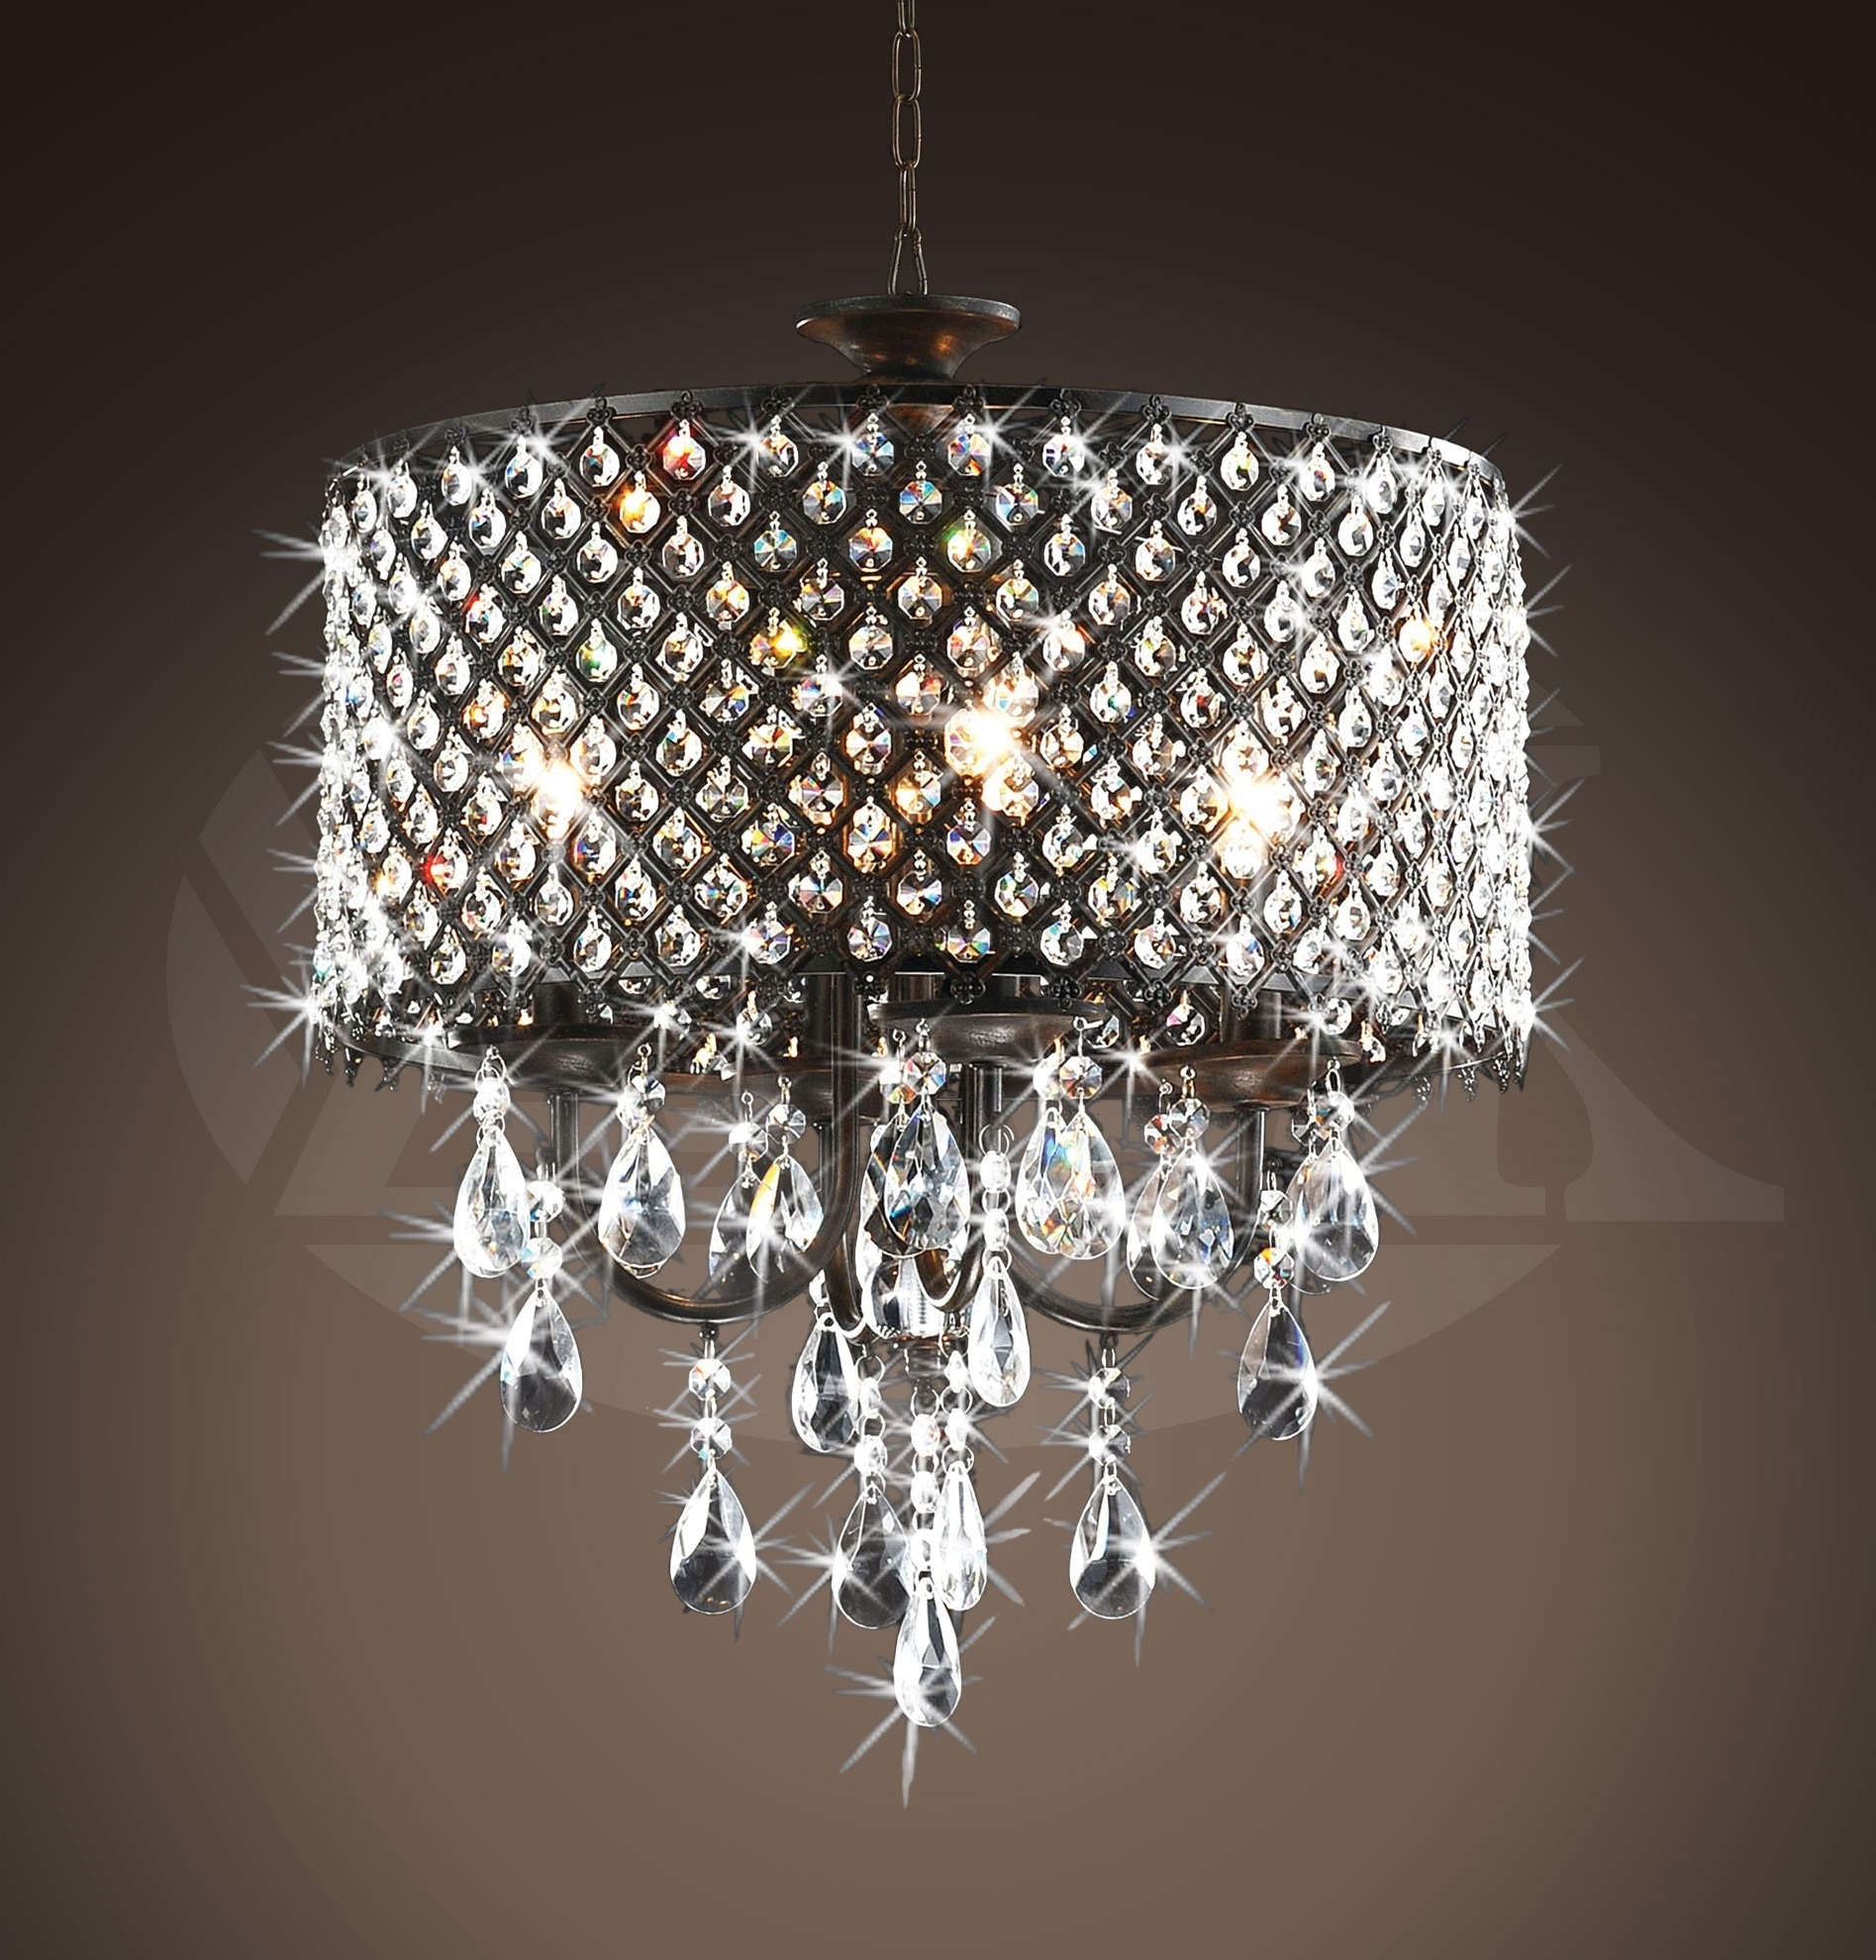 Famous Rachelle 4 Light Round Antique Bronze Brass Crystal Chandelier Pertaining To Sparkly Chandeliers (View 2 of 20)